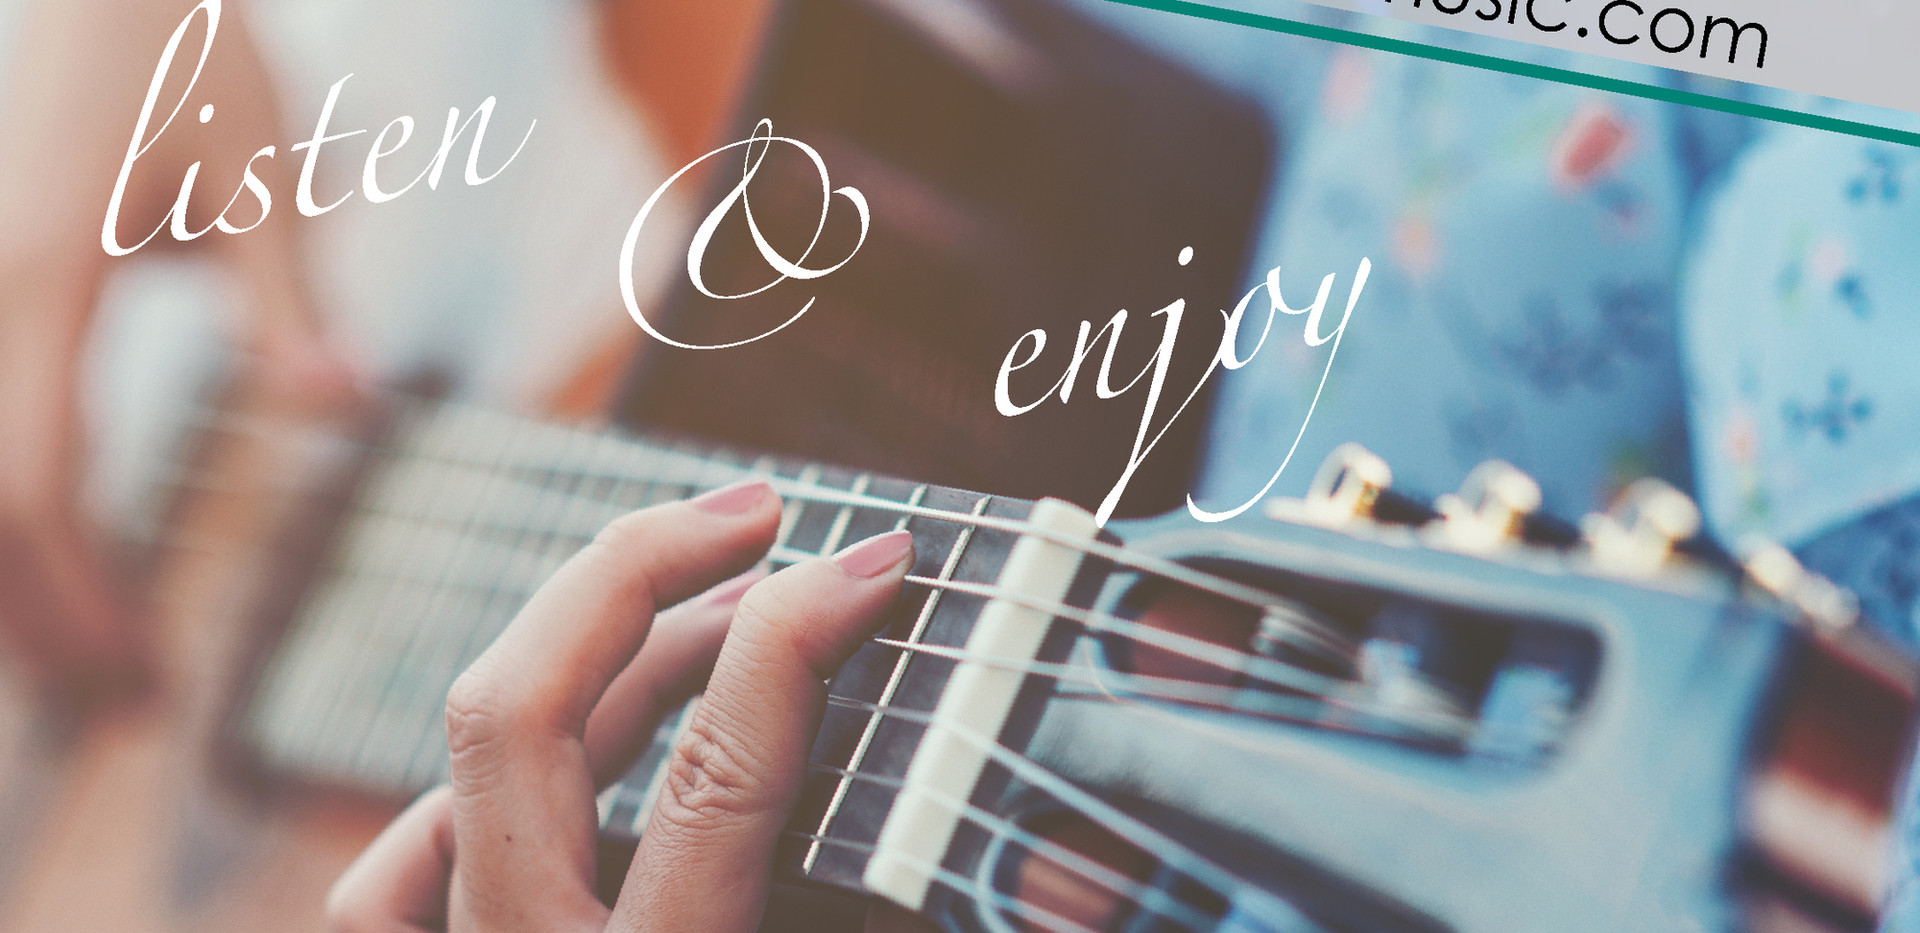 #acoustic #lounge #chillout